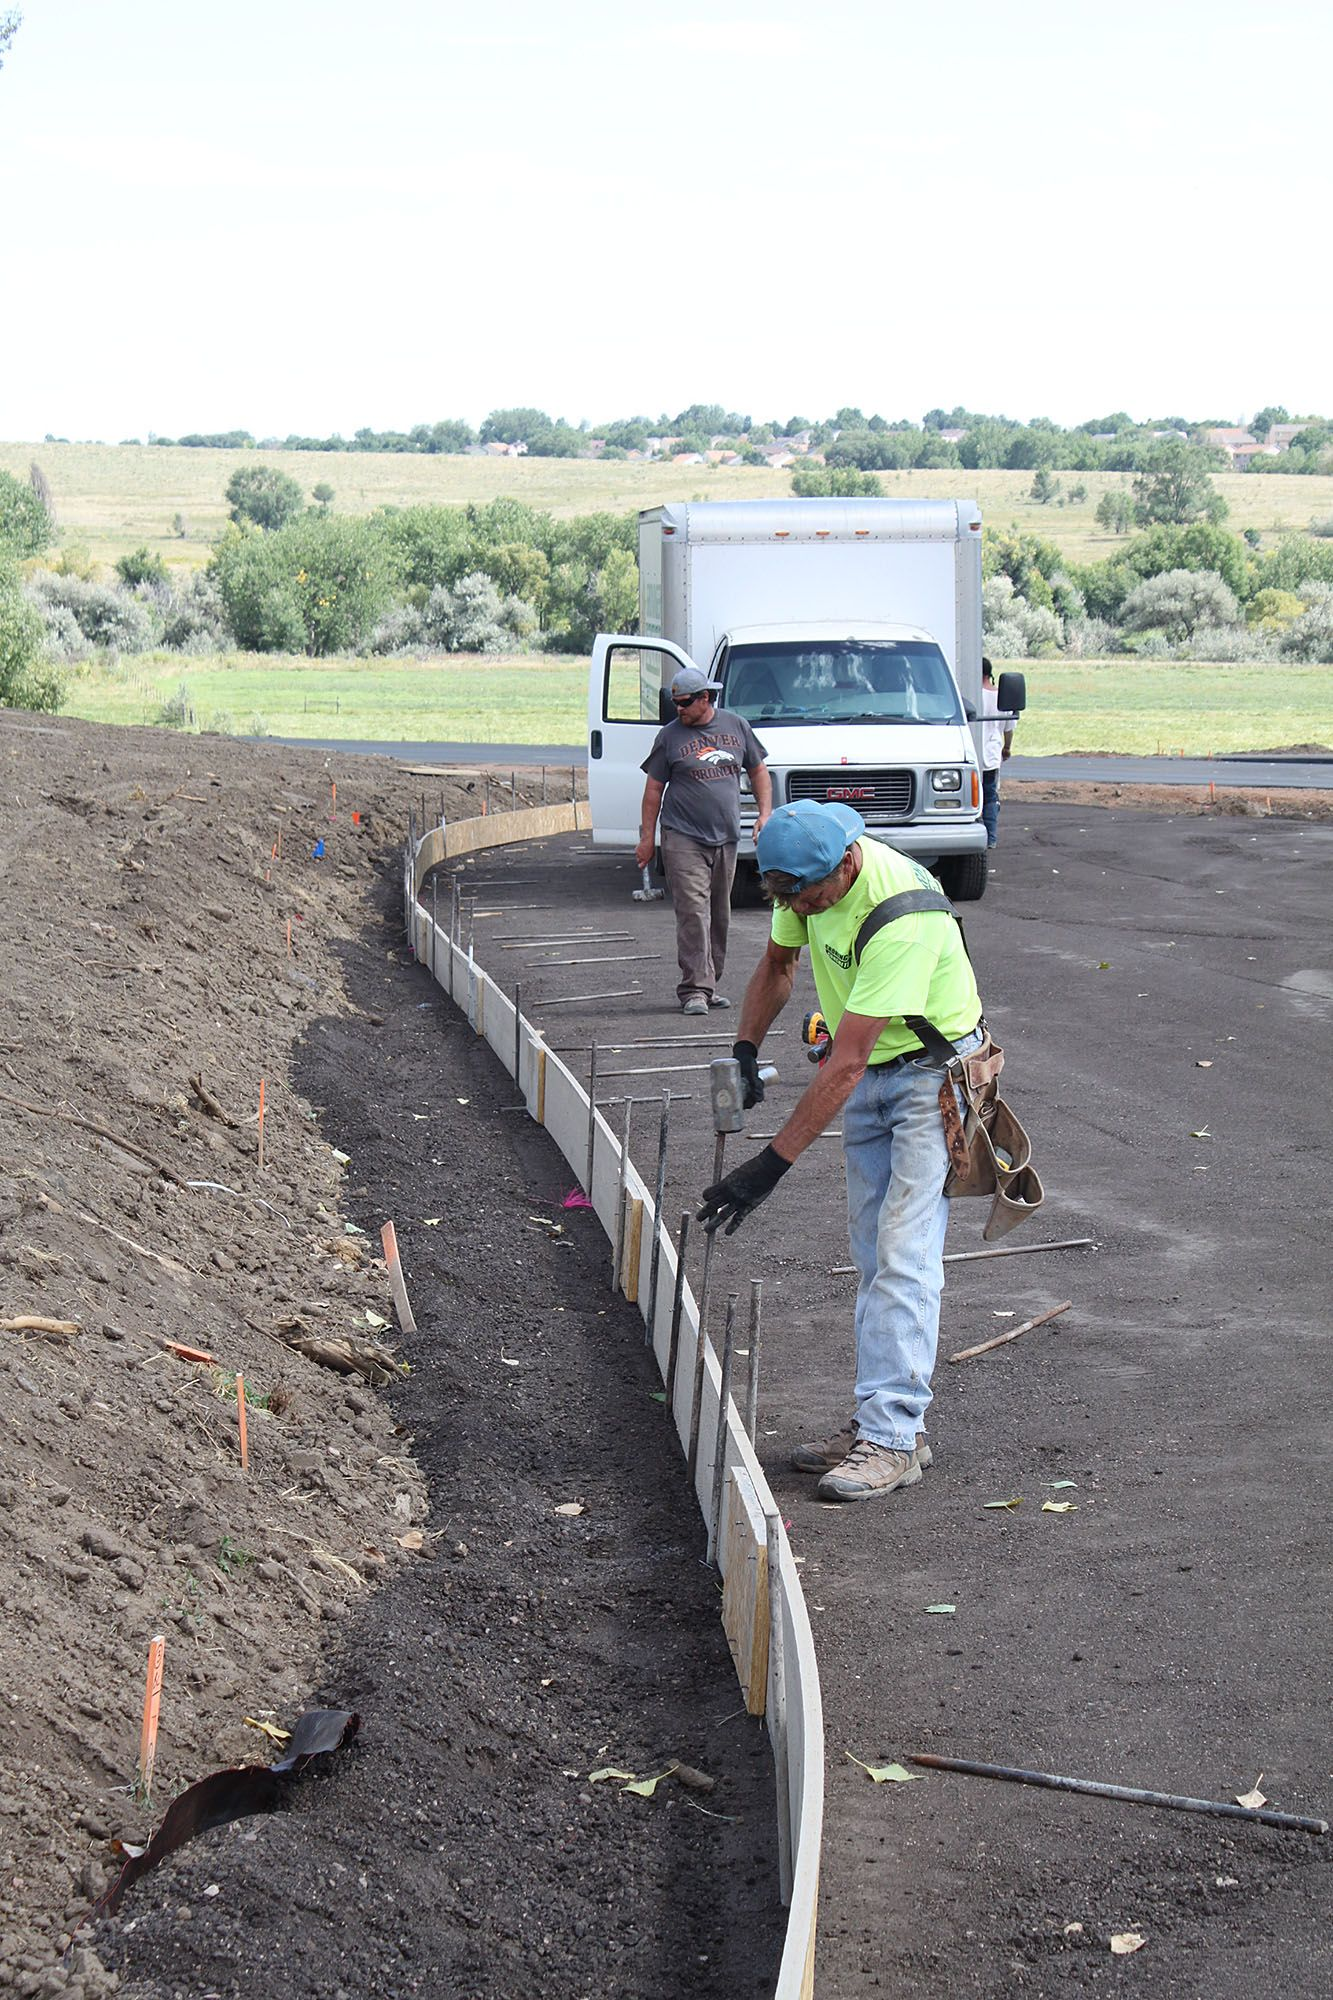 Sept. 14 Progress Photos: Working on the new parking lot behind the Hacienda